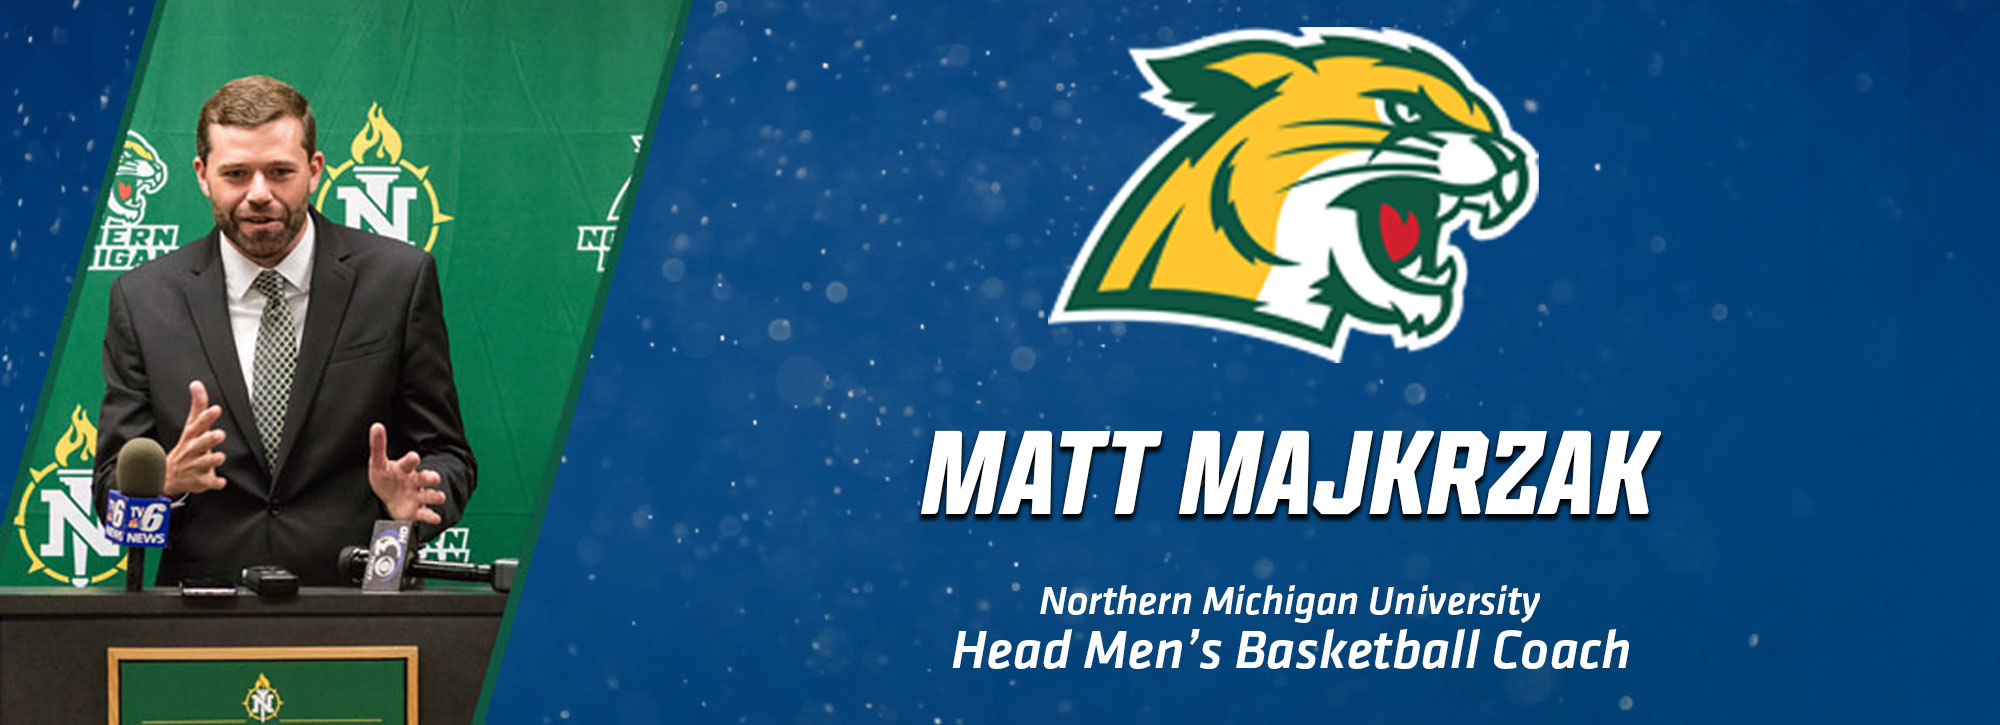 NMU Names Matt Majkrzak as Head Men's Basketball Coach